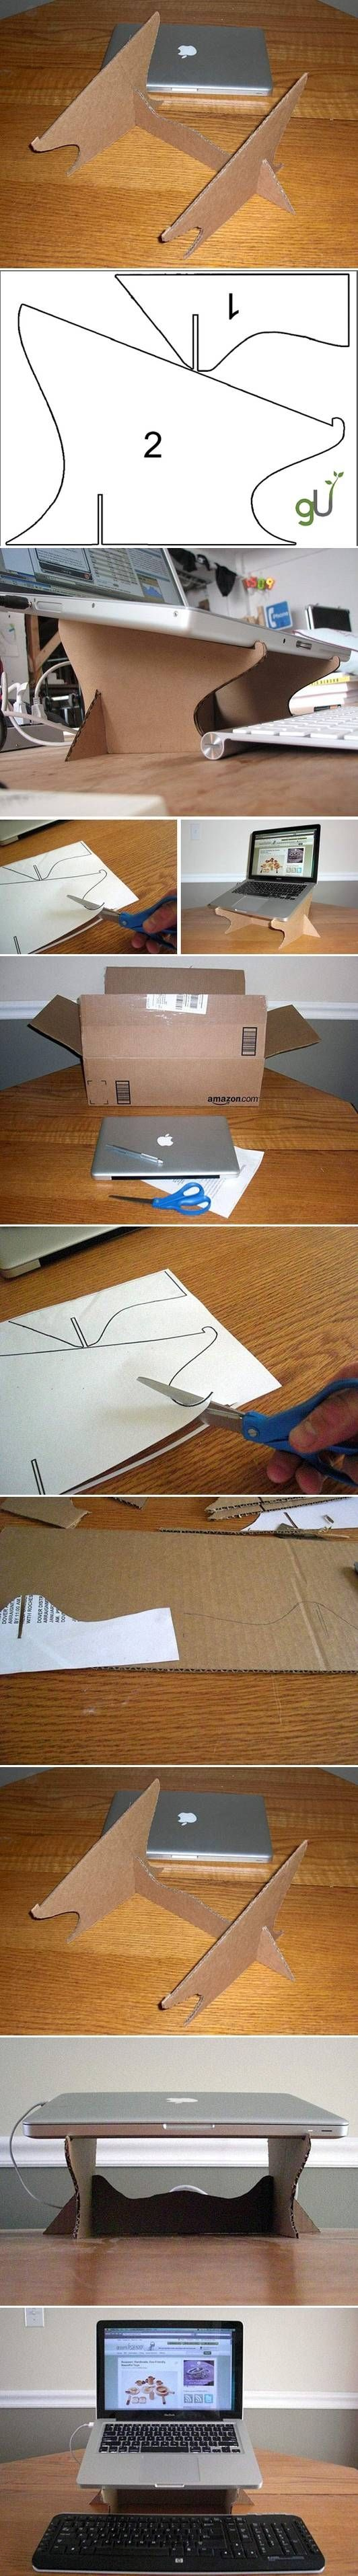 DIY Simple Cardboard Laptop Stand diy craft crafts easy crafts diy ideas diy…